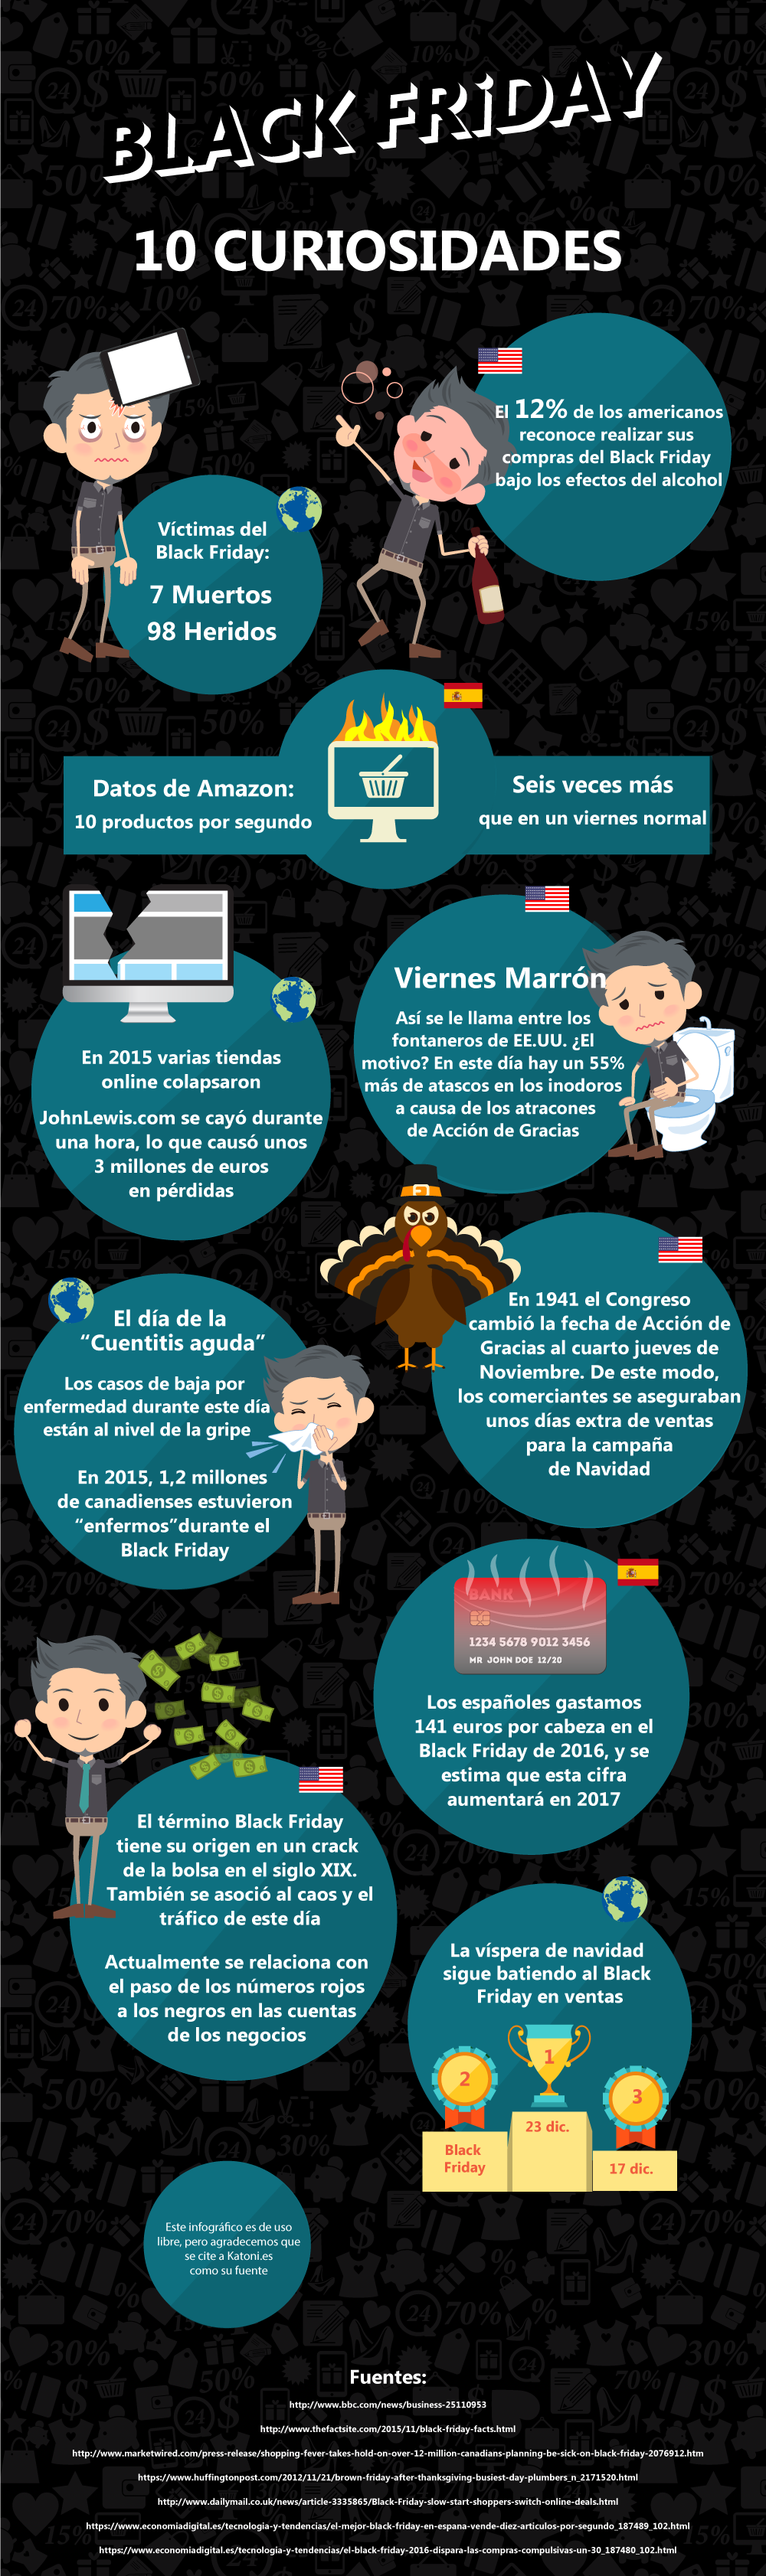 infografia-black-friday